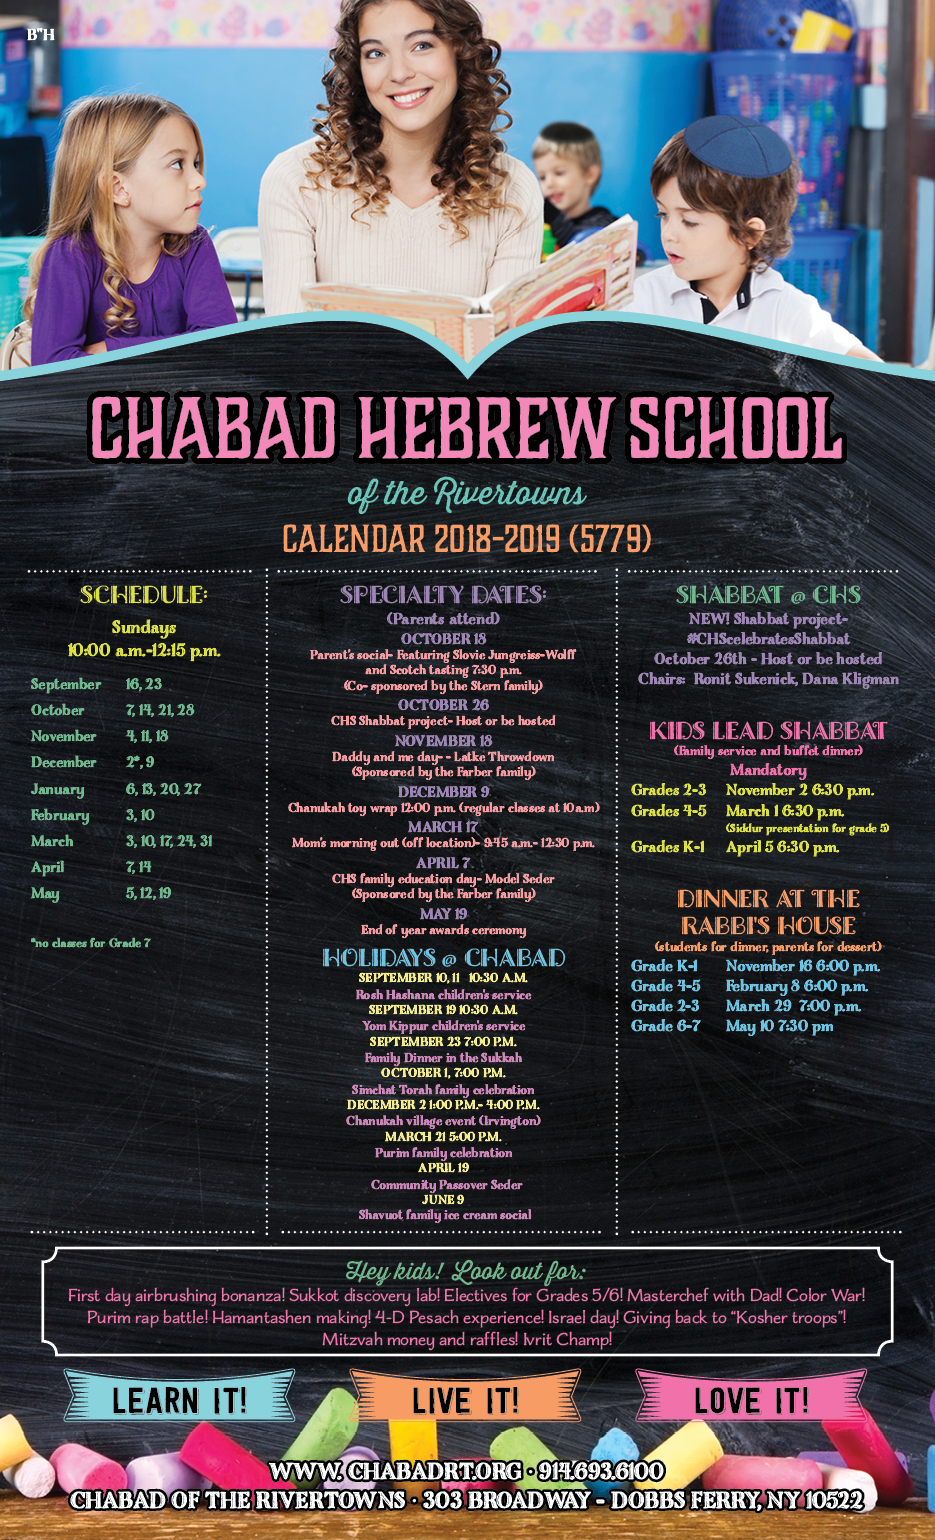 Hebrew School Calendar 2018 web.jpg